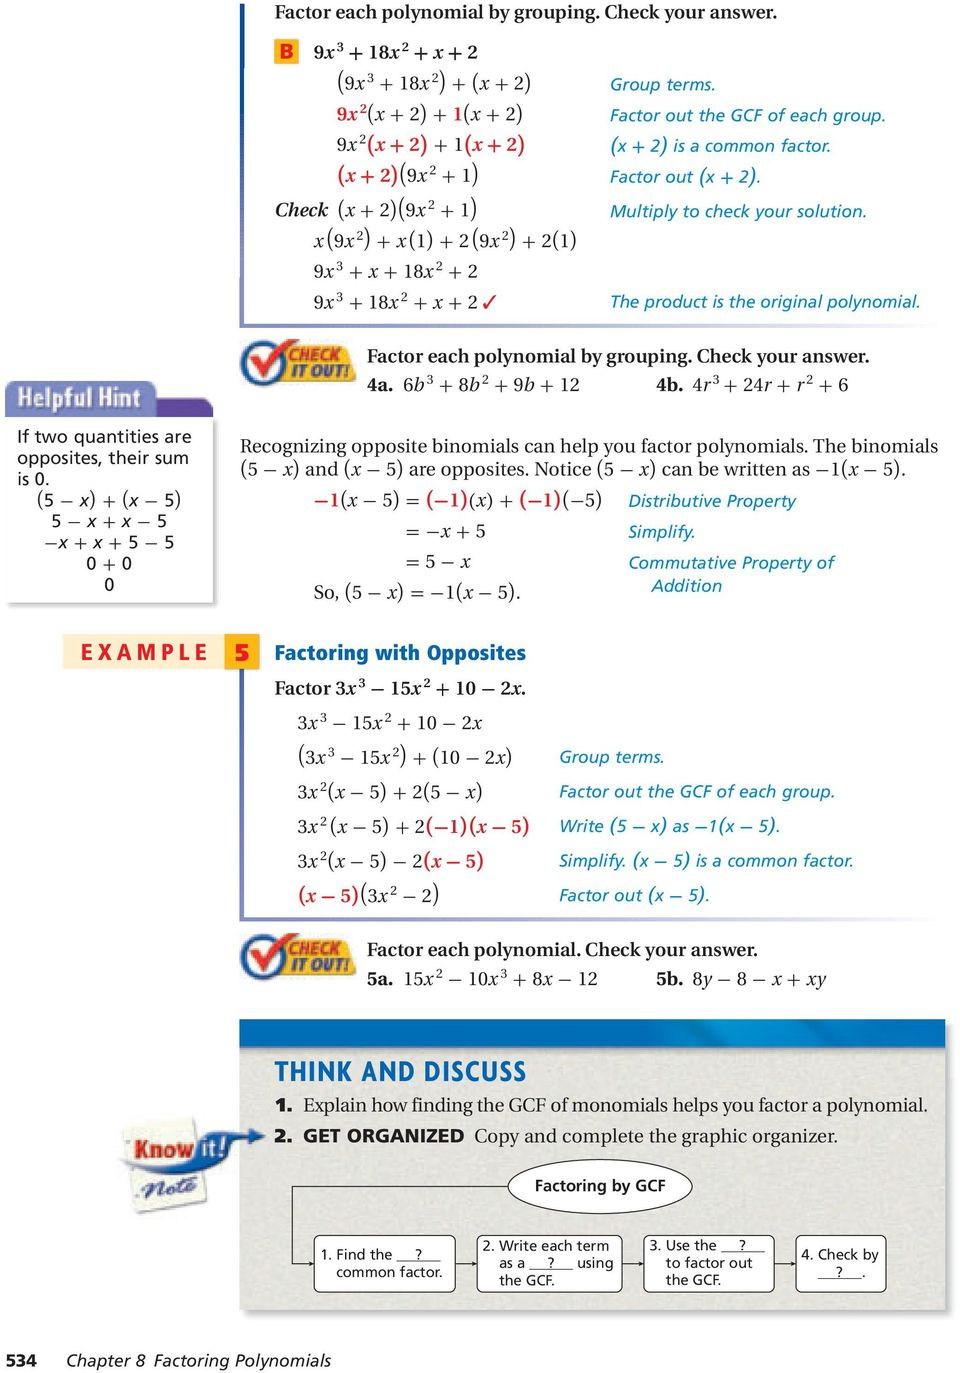 Factoring Polynomials Worksheet Answers Factoring Polynomials Pdf Free Download